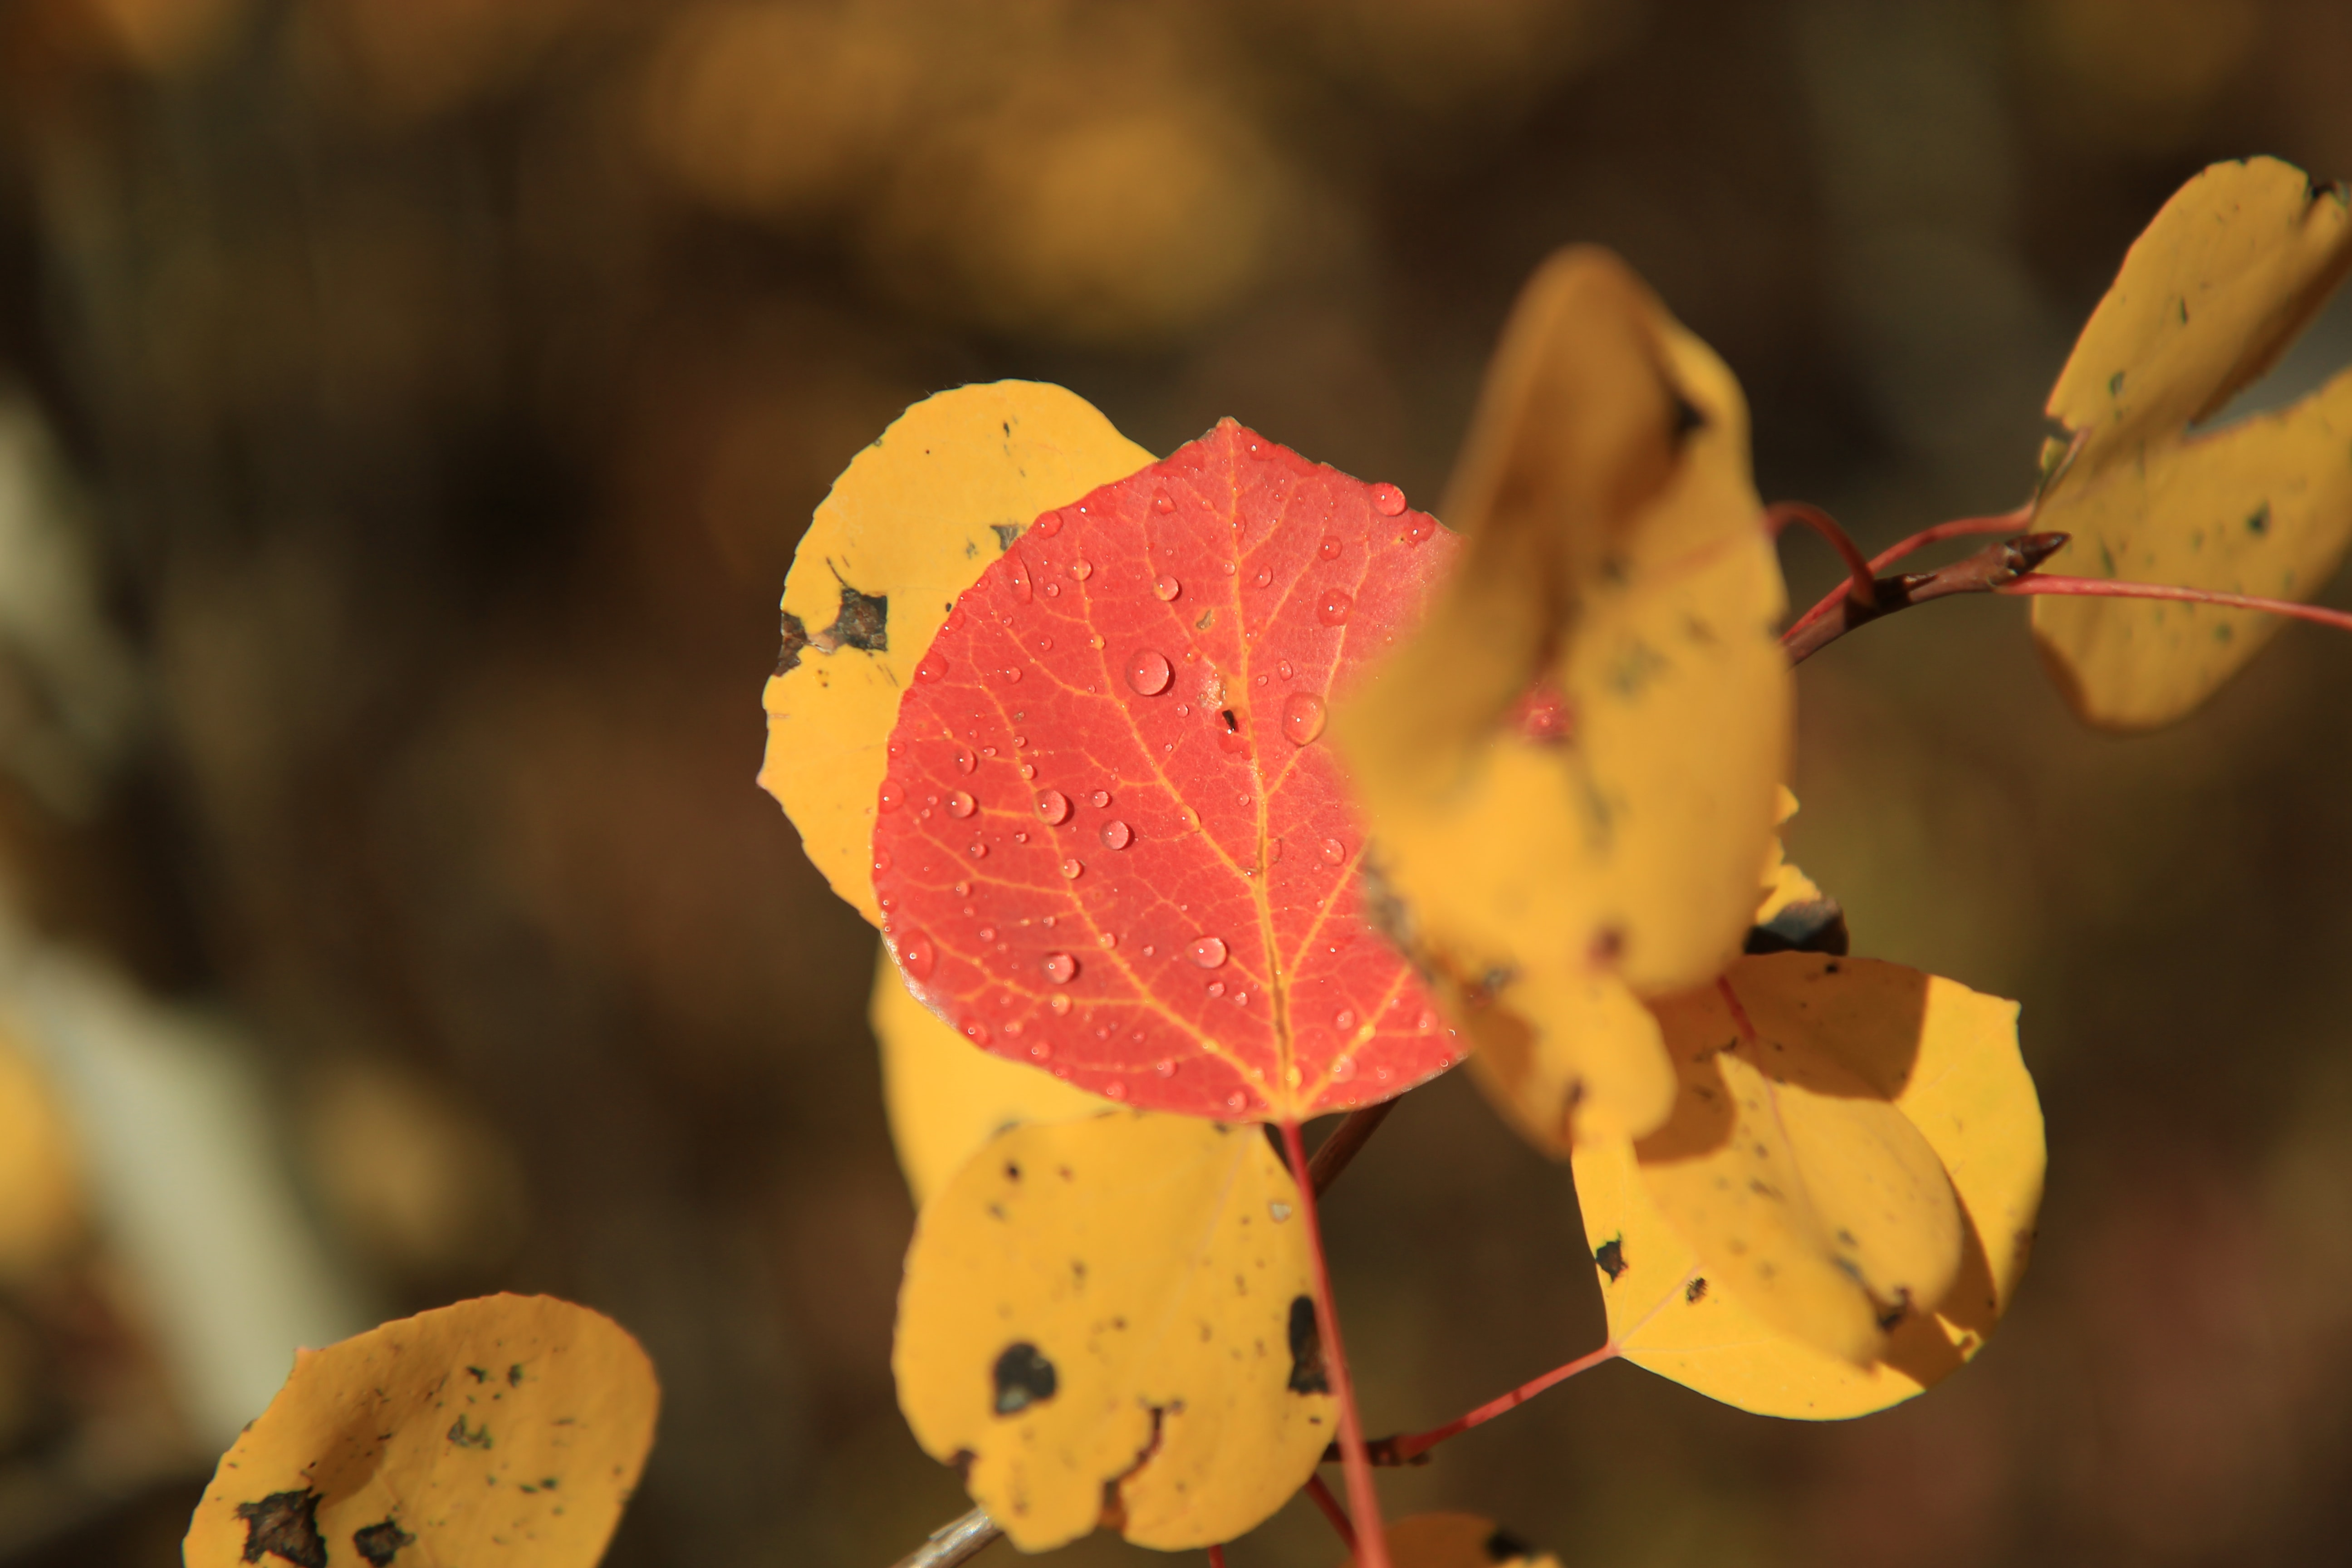 selective focus photograph of red leaf